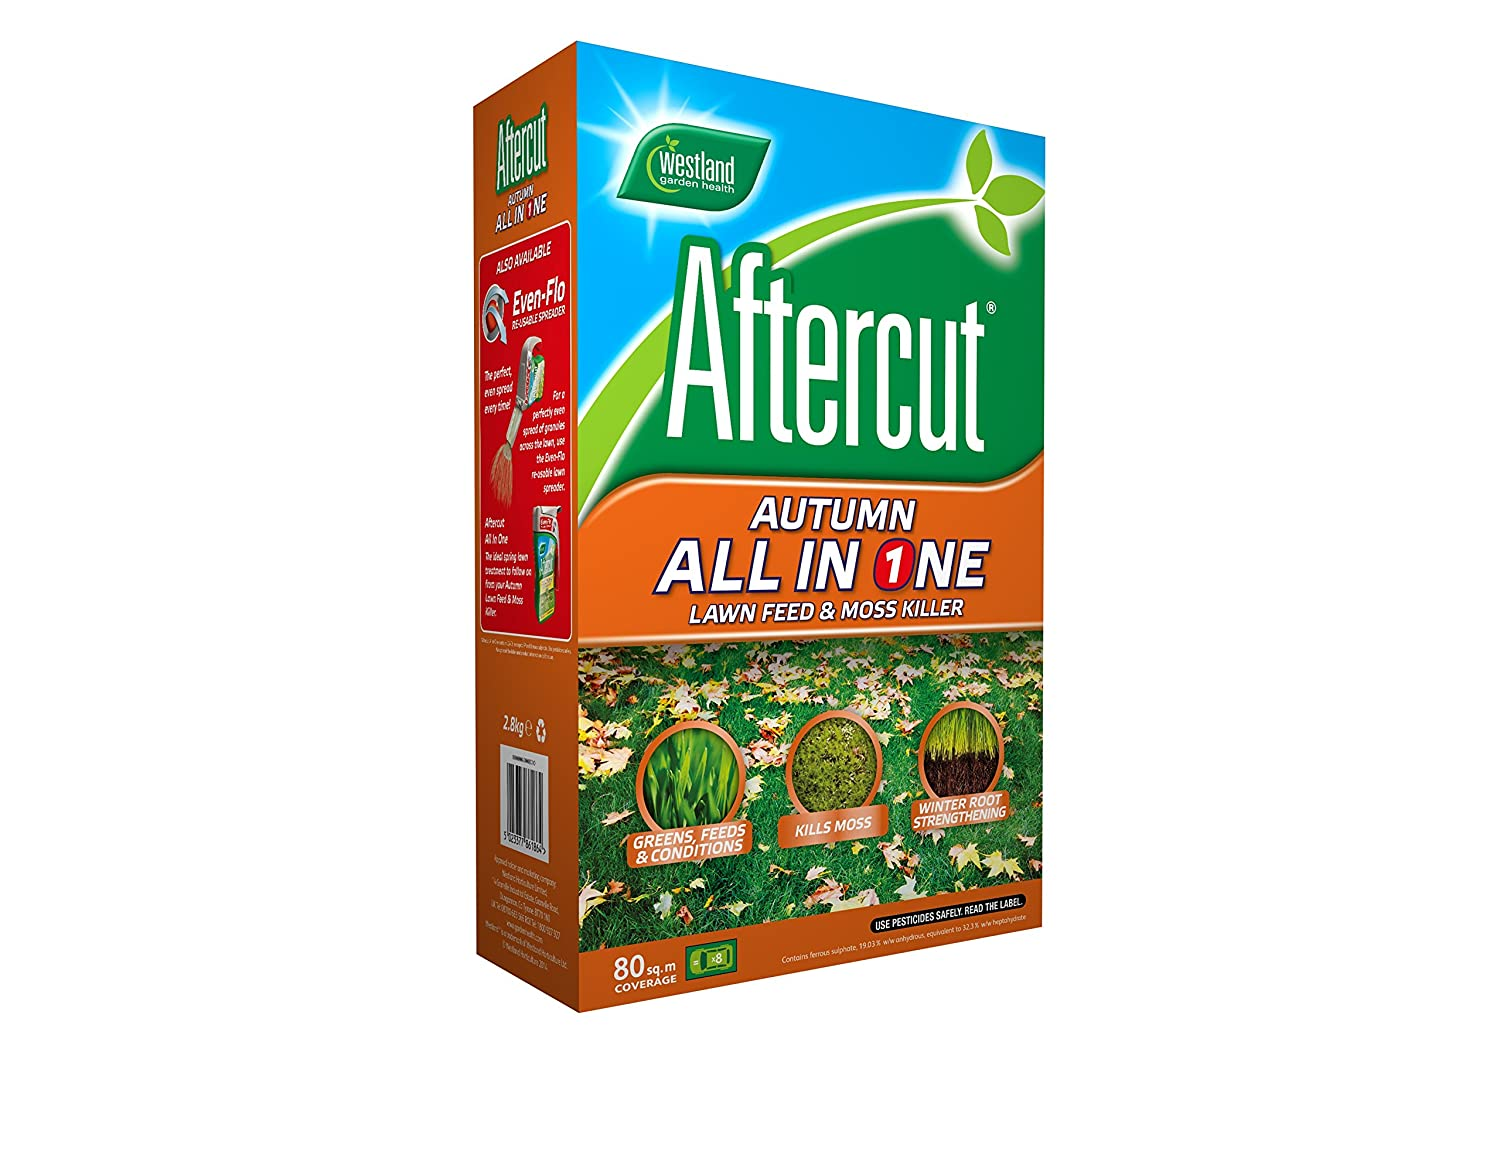 Aftercut Autumn All-in-One Lawn Feed and Moss Killer, 80 sq m, 2.8 kg Westland